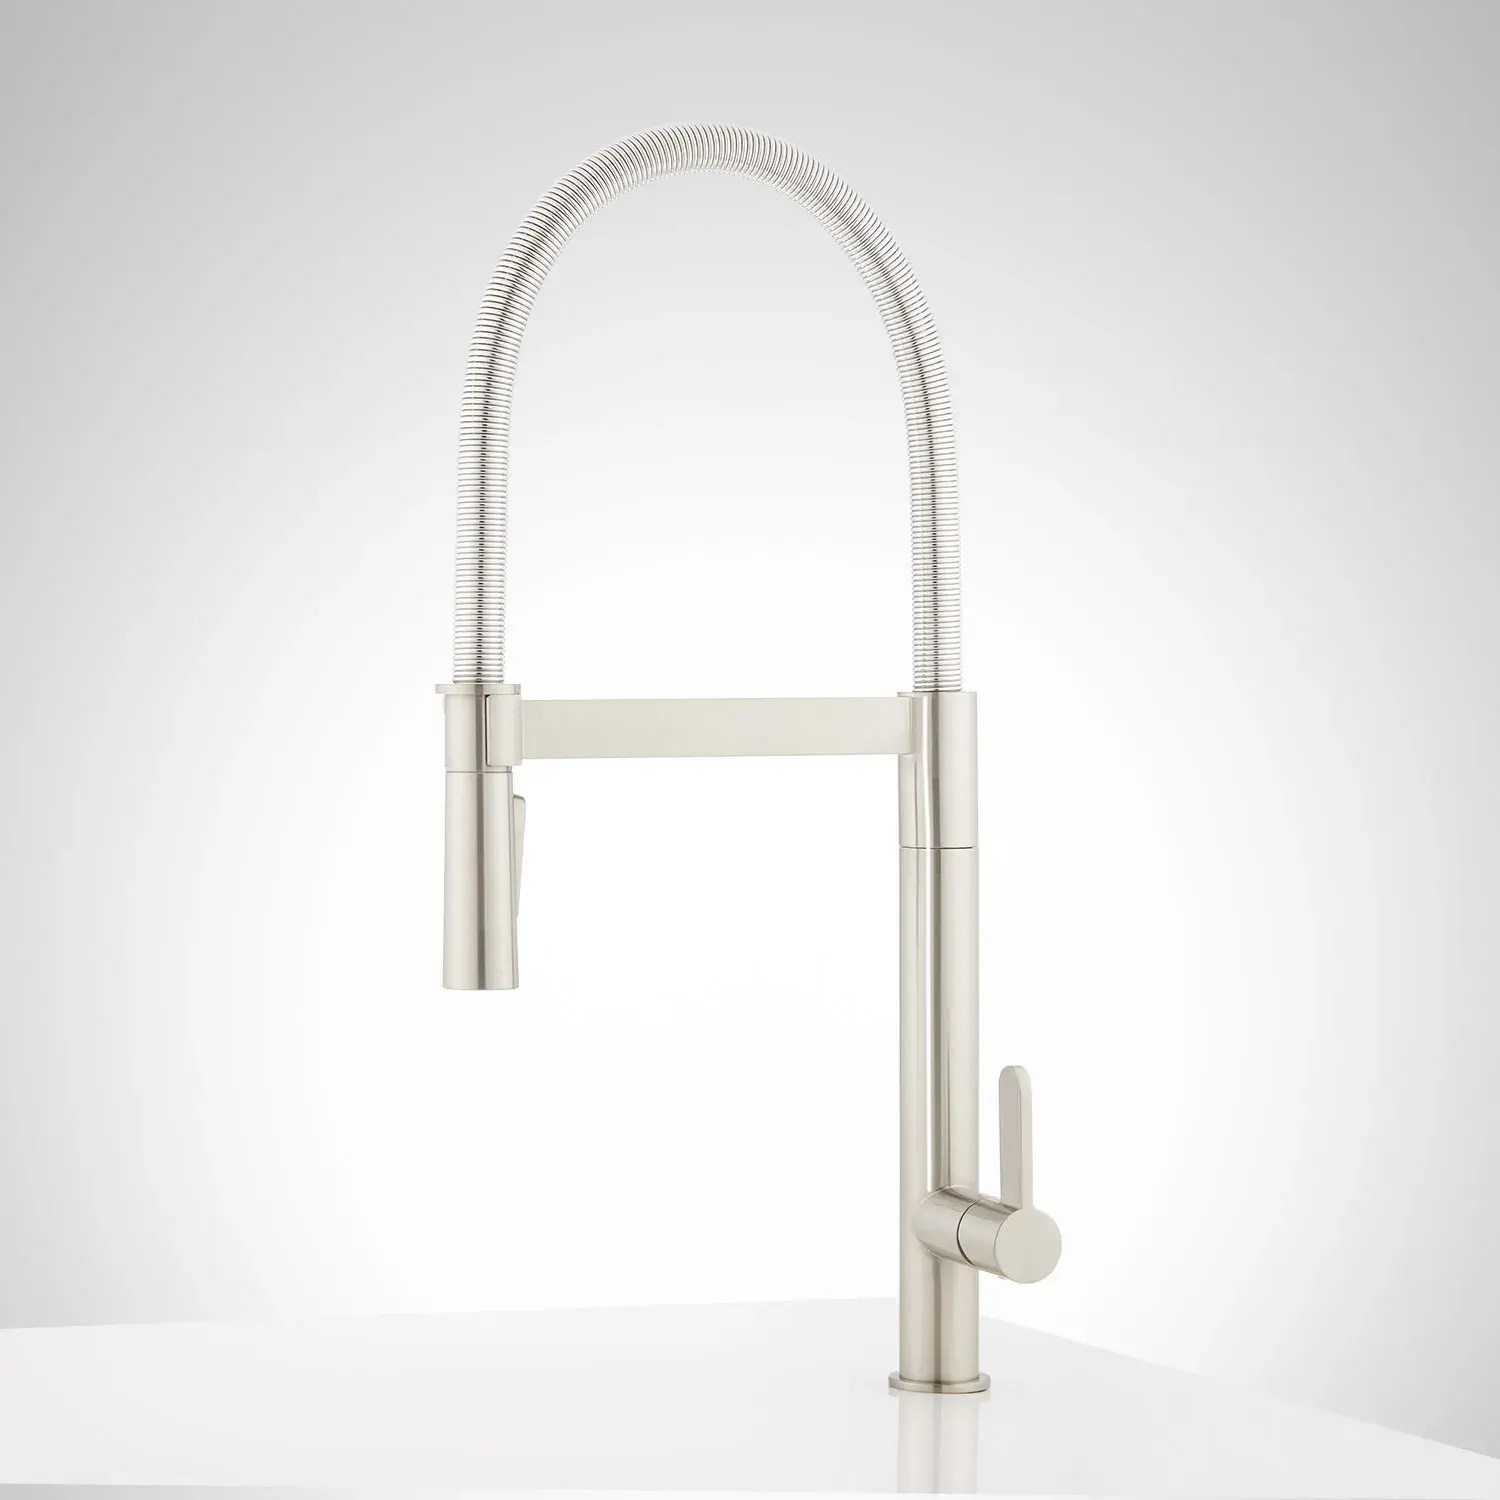 ocala single hole kitchen faucet with pull down spring spout